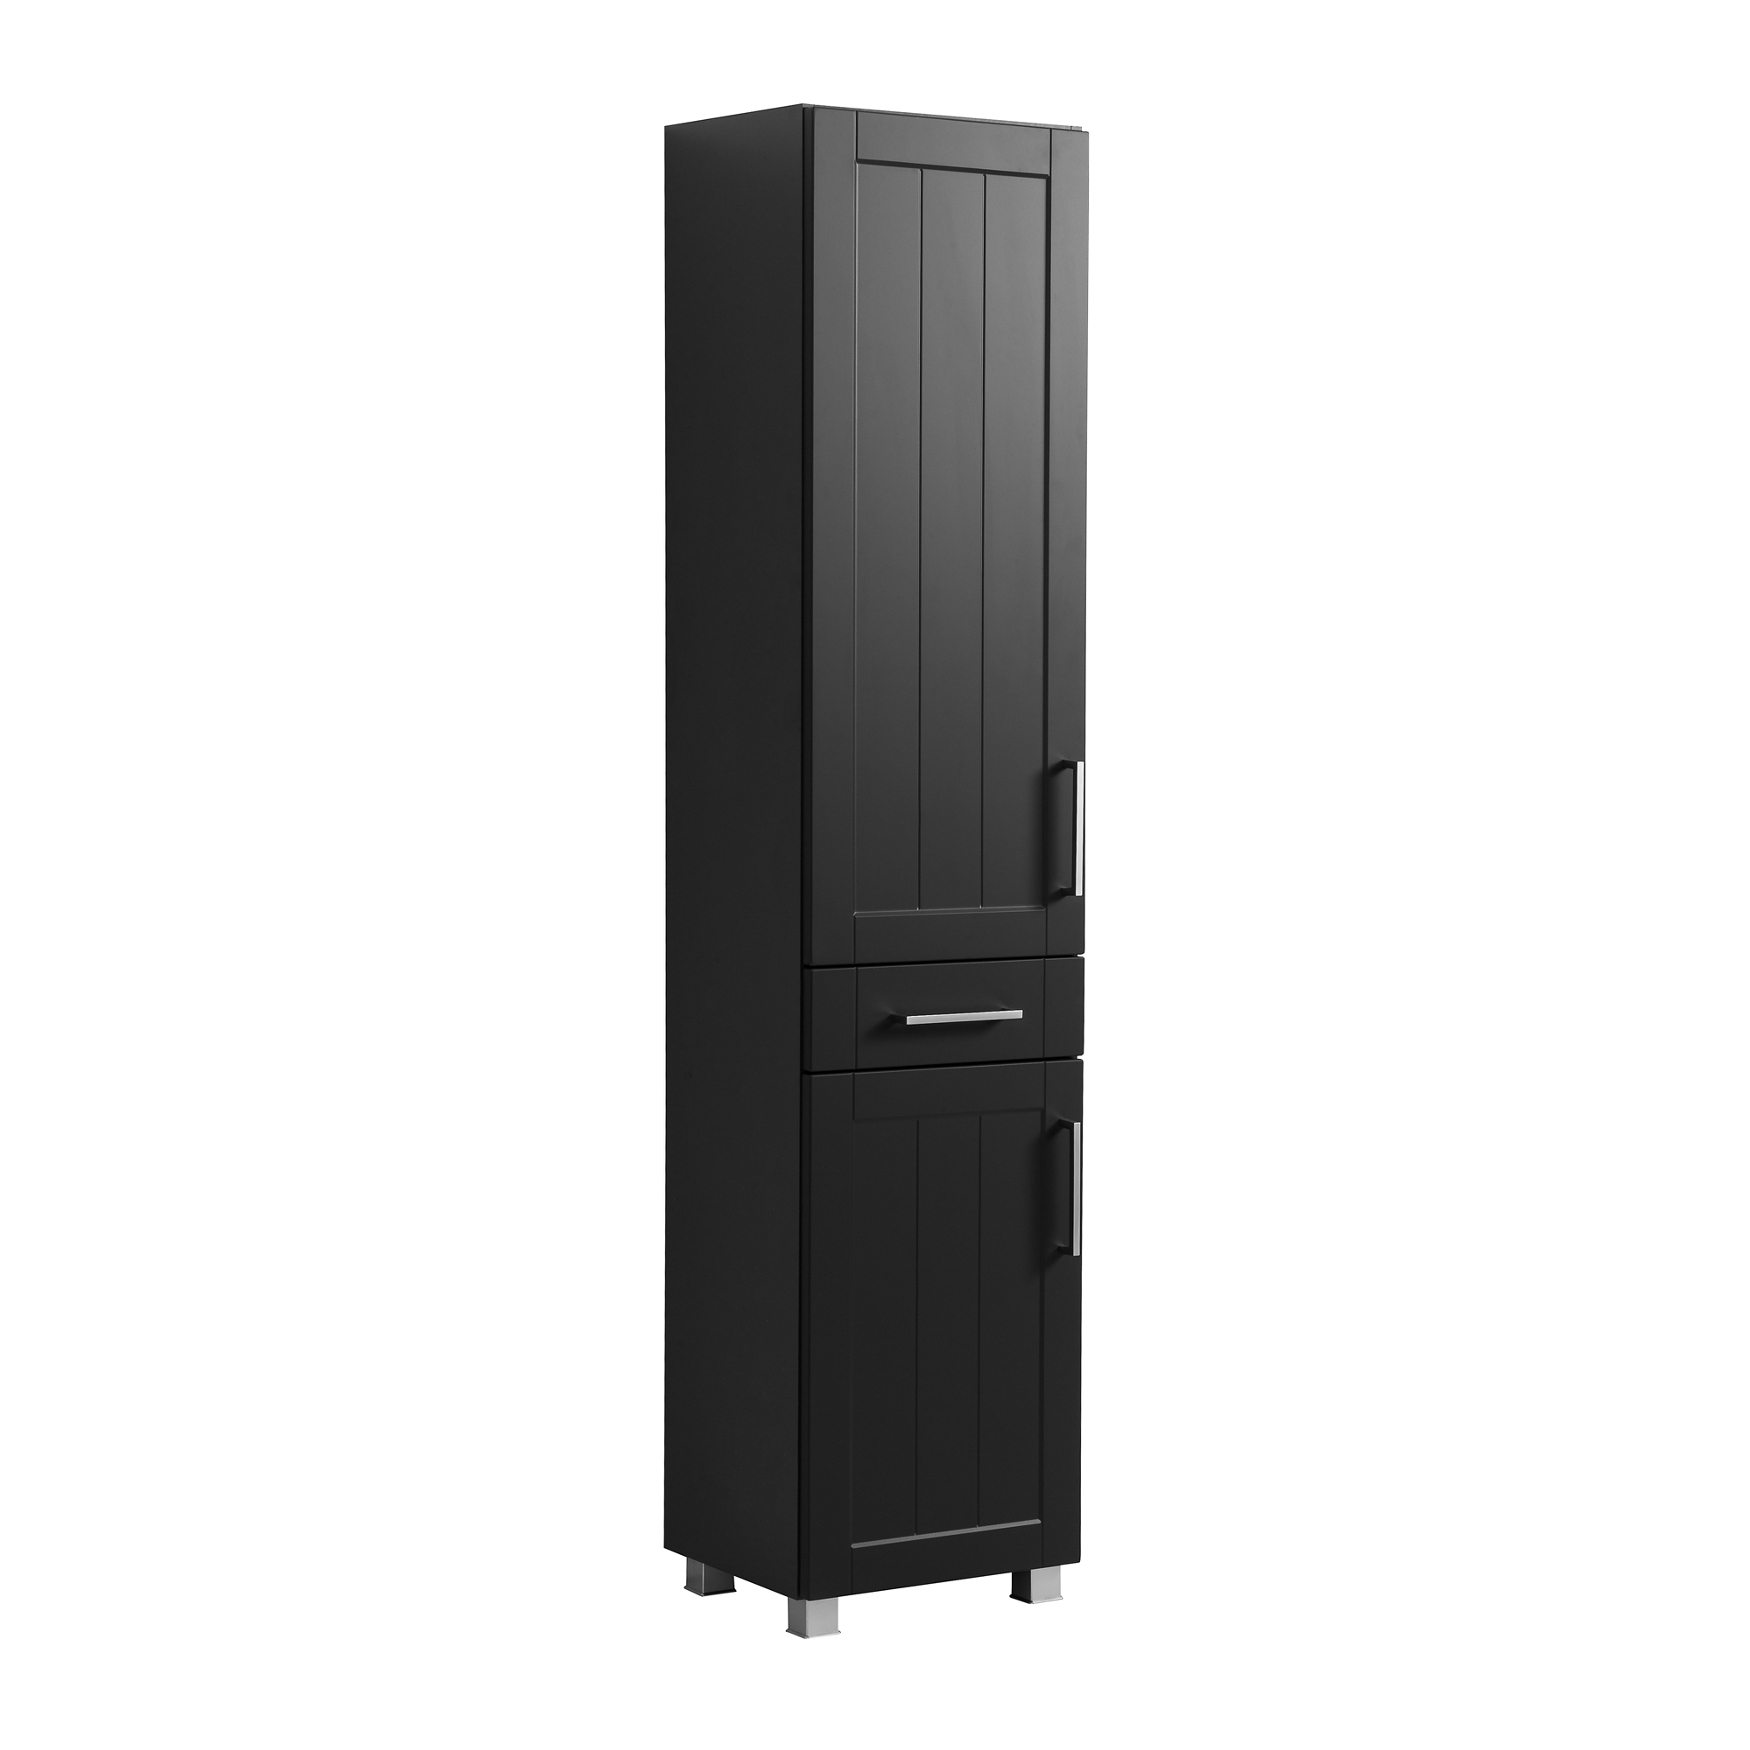 bad hochschrank barolo 2 t rig 1 schublade 40 cm breit grau matt bad bad hochschr nke. Black Bedroom Furniture Sets. Home Design Ideas